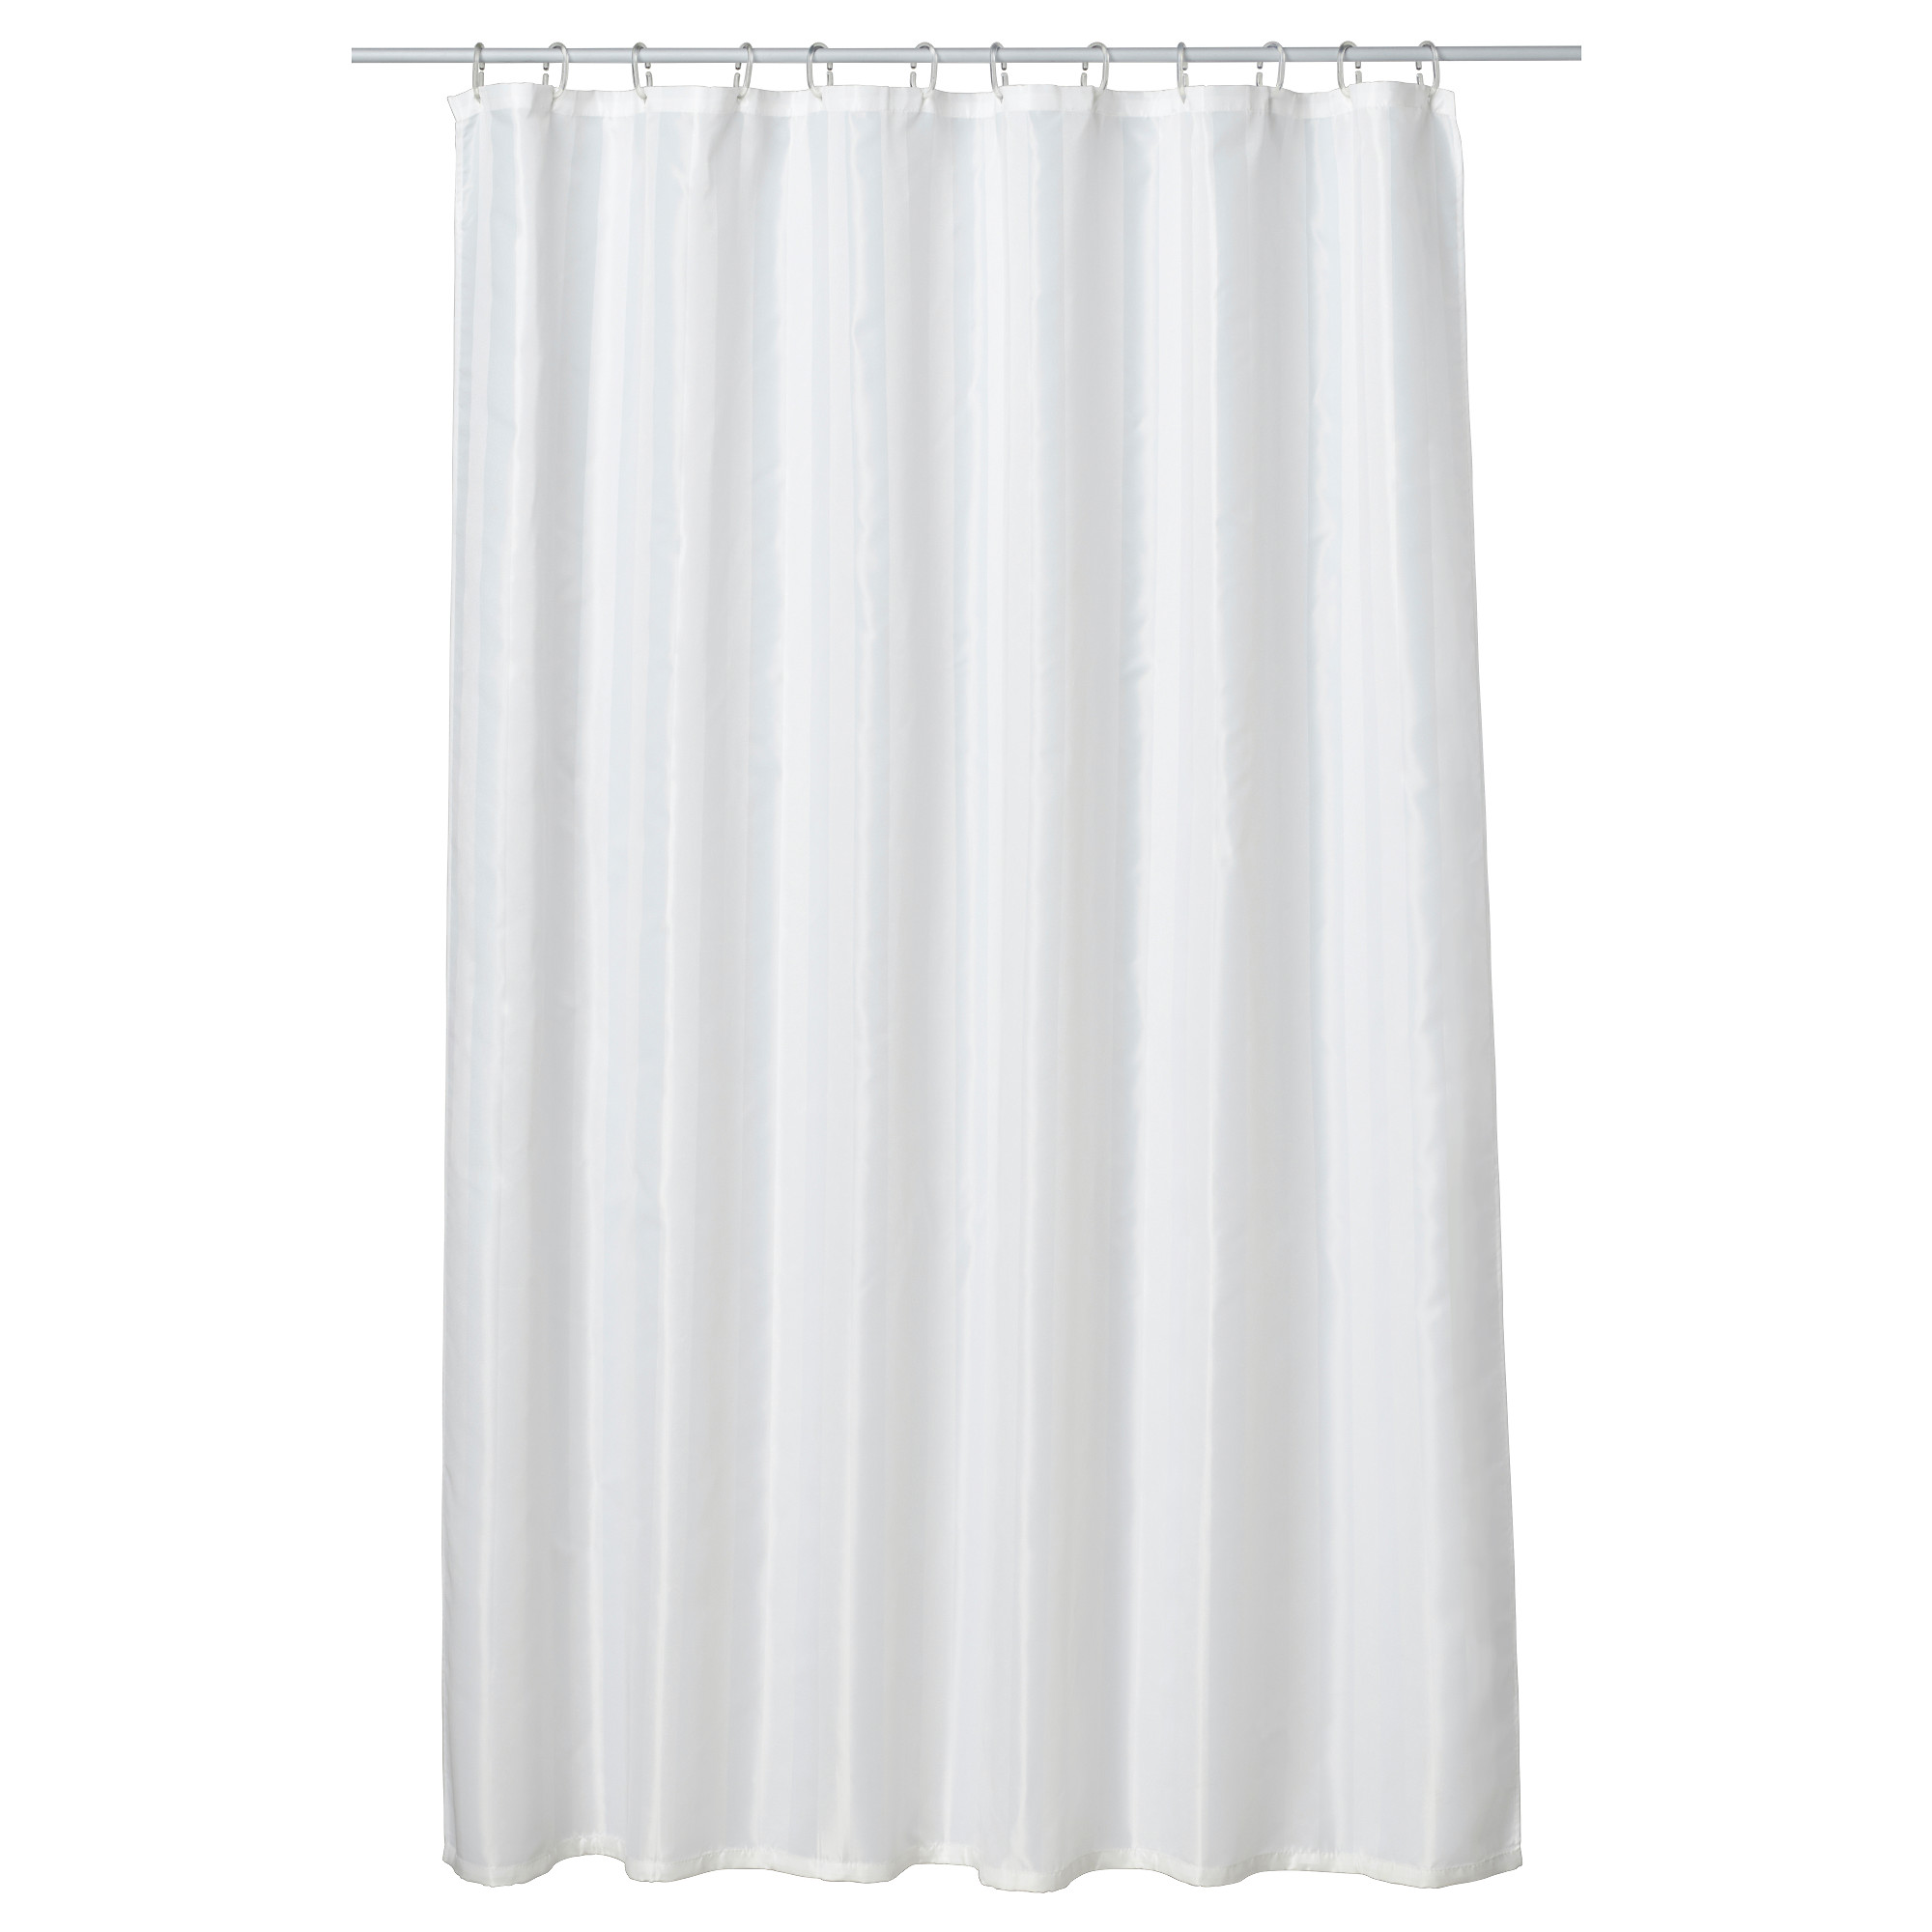 Ikea Shower Curtain | Shower Curtain Rail Ikea | Ikea Shower Curtain Rail